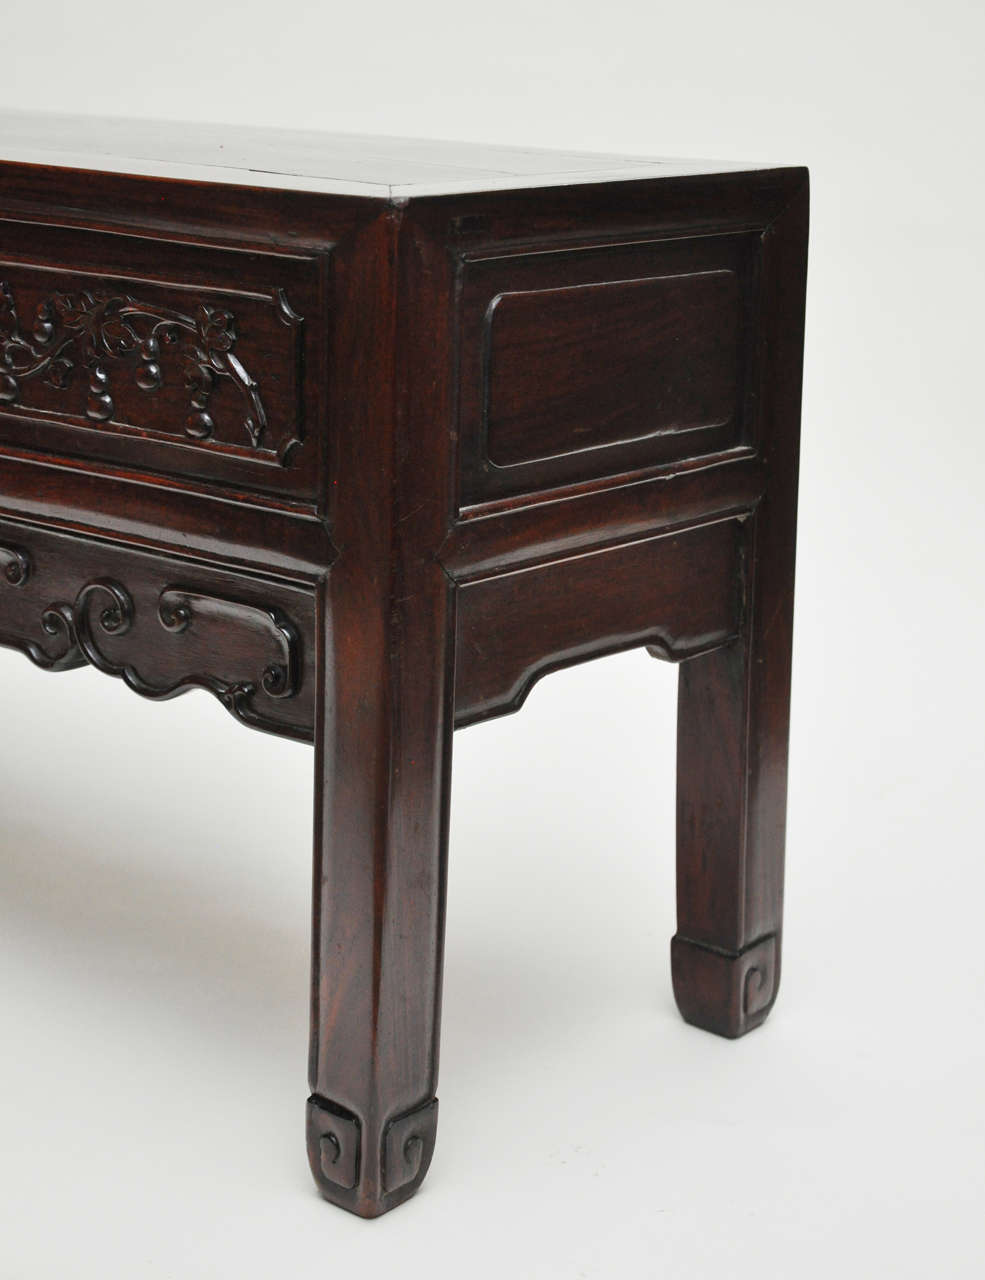 Chinese blackwood low table canton circa 1820 at 1stdibs for Chinese art furniture